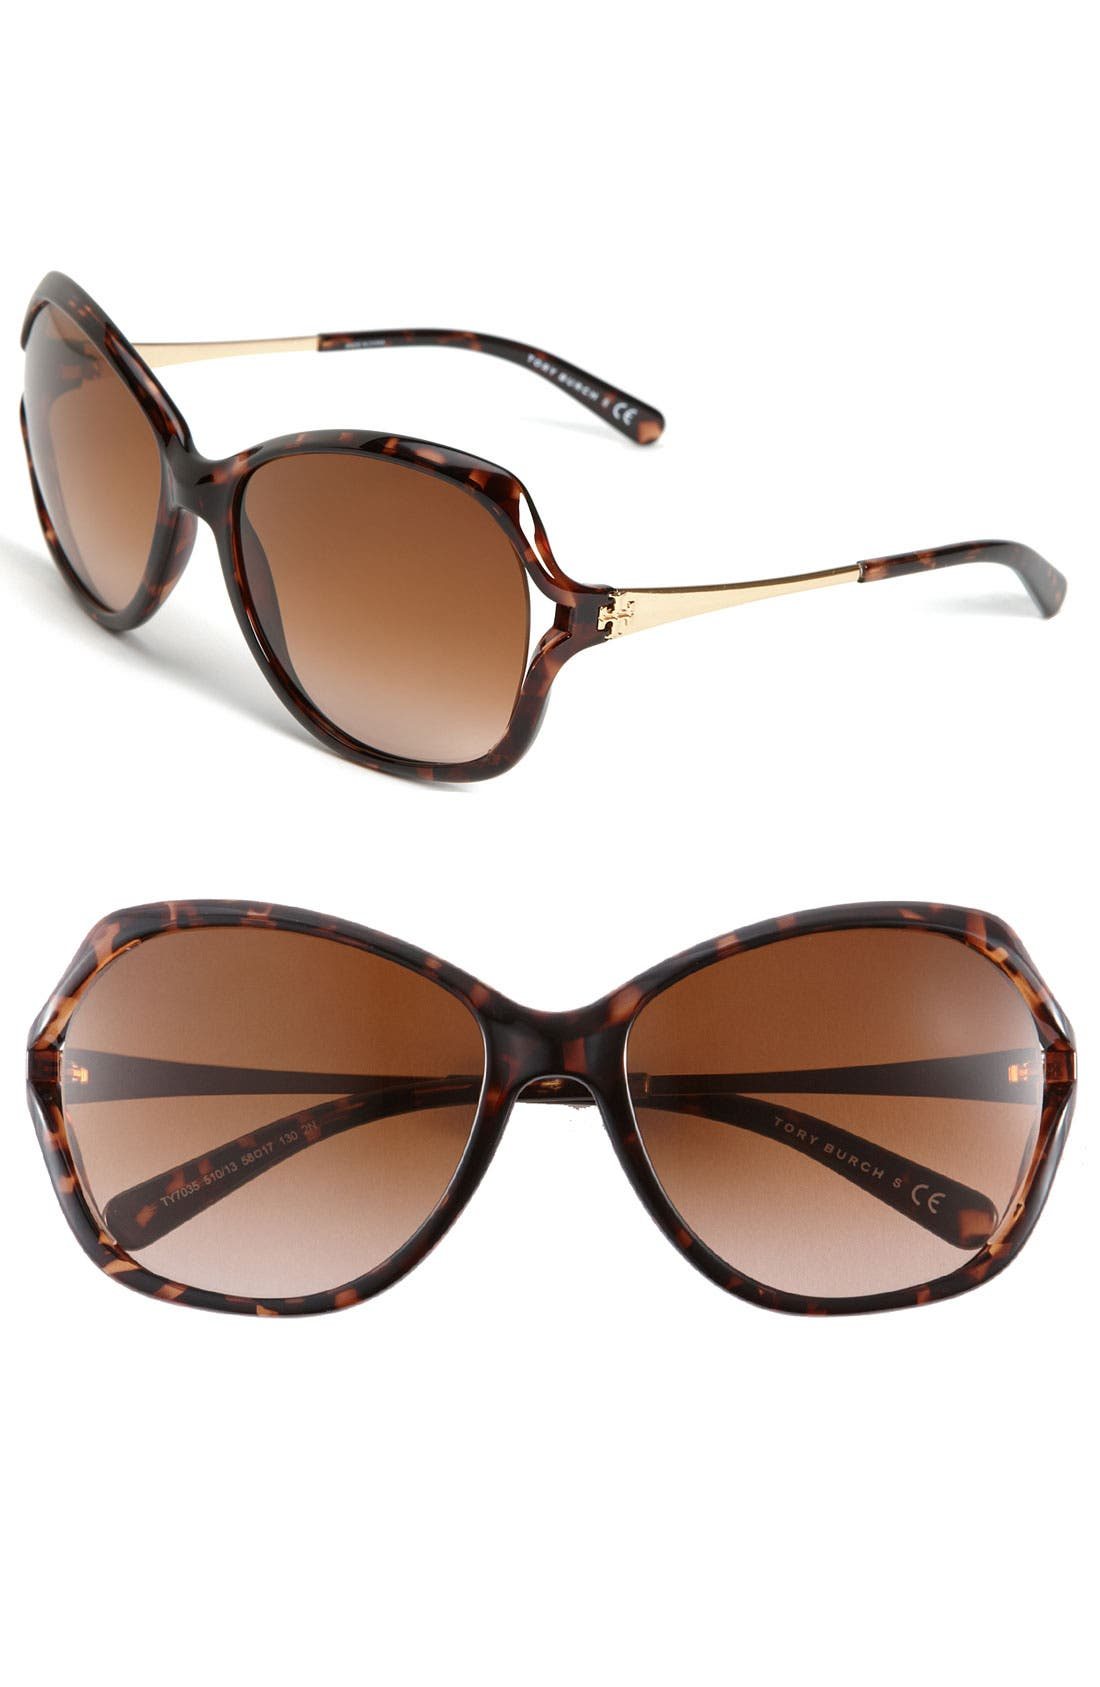 Main Image - Tory Burch 59mm Open Lens Butterfly Sunglasses